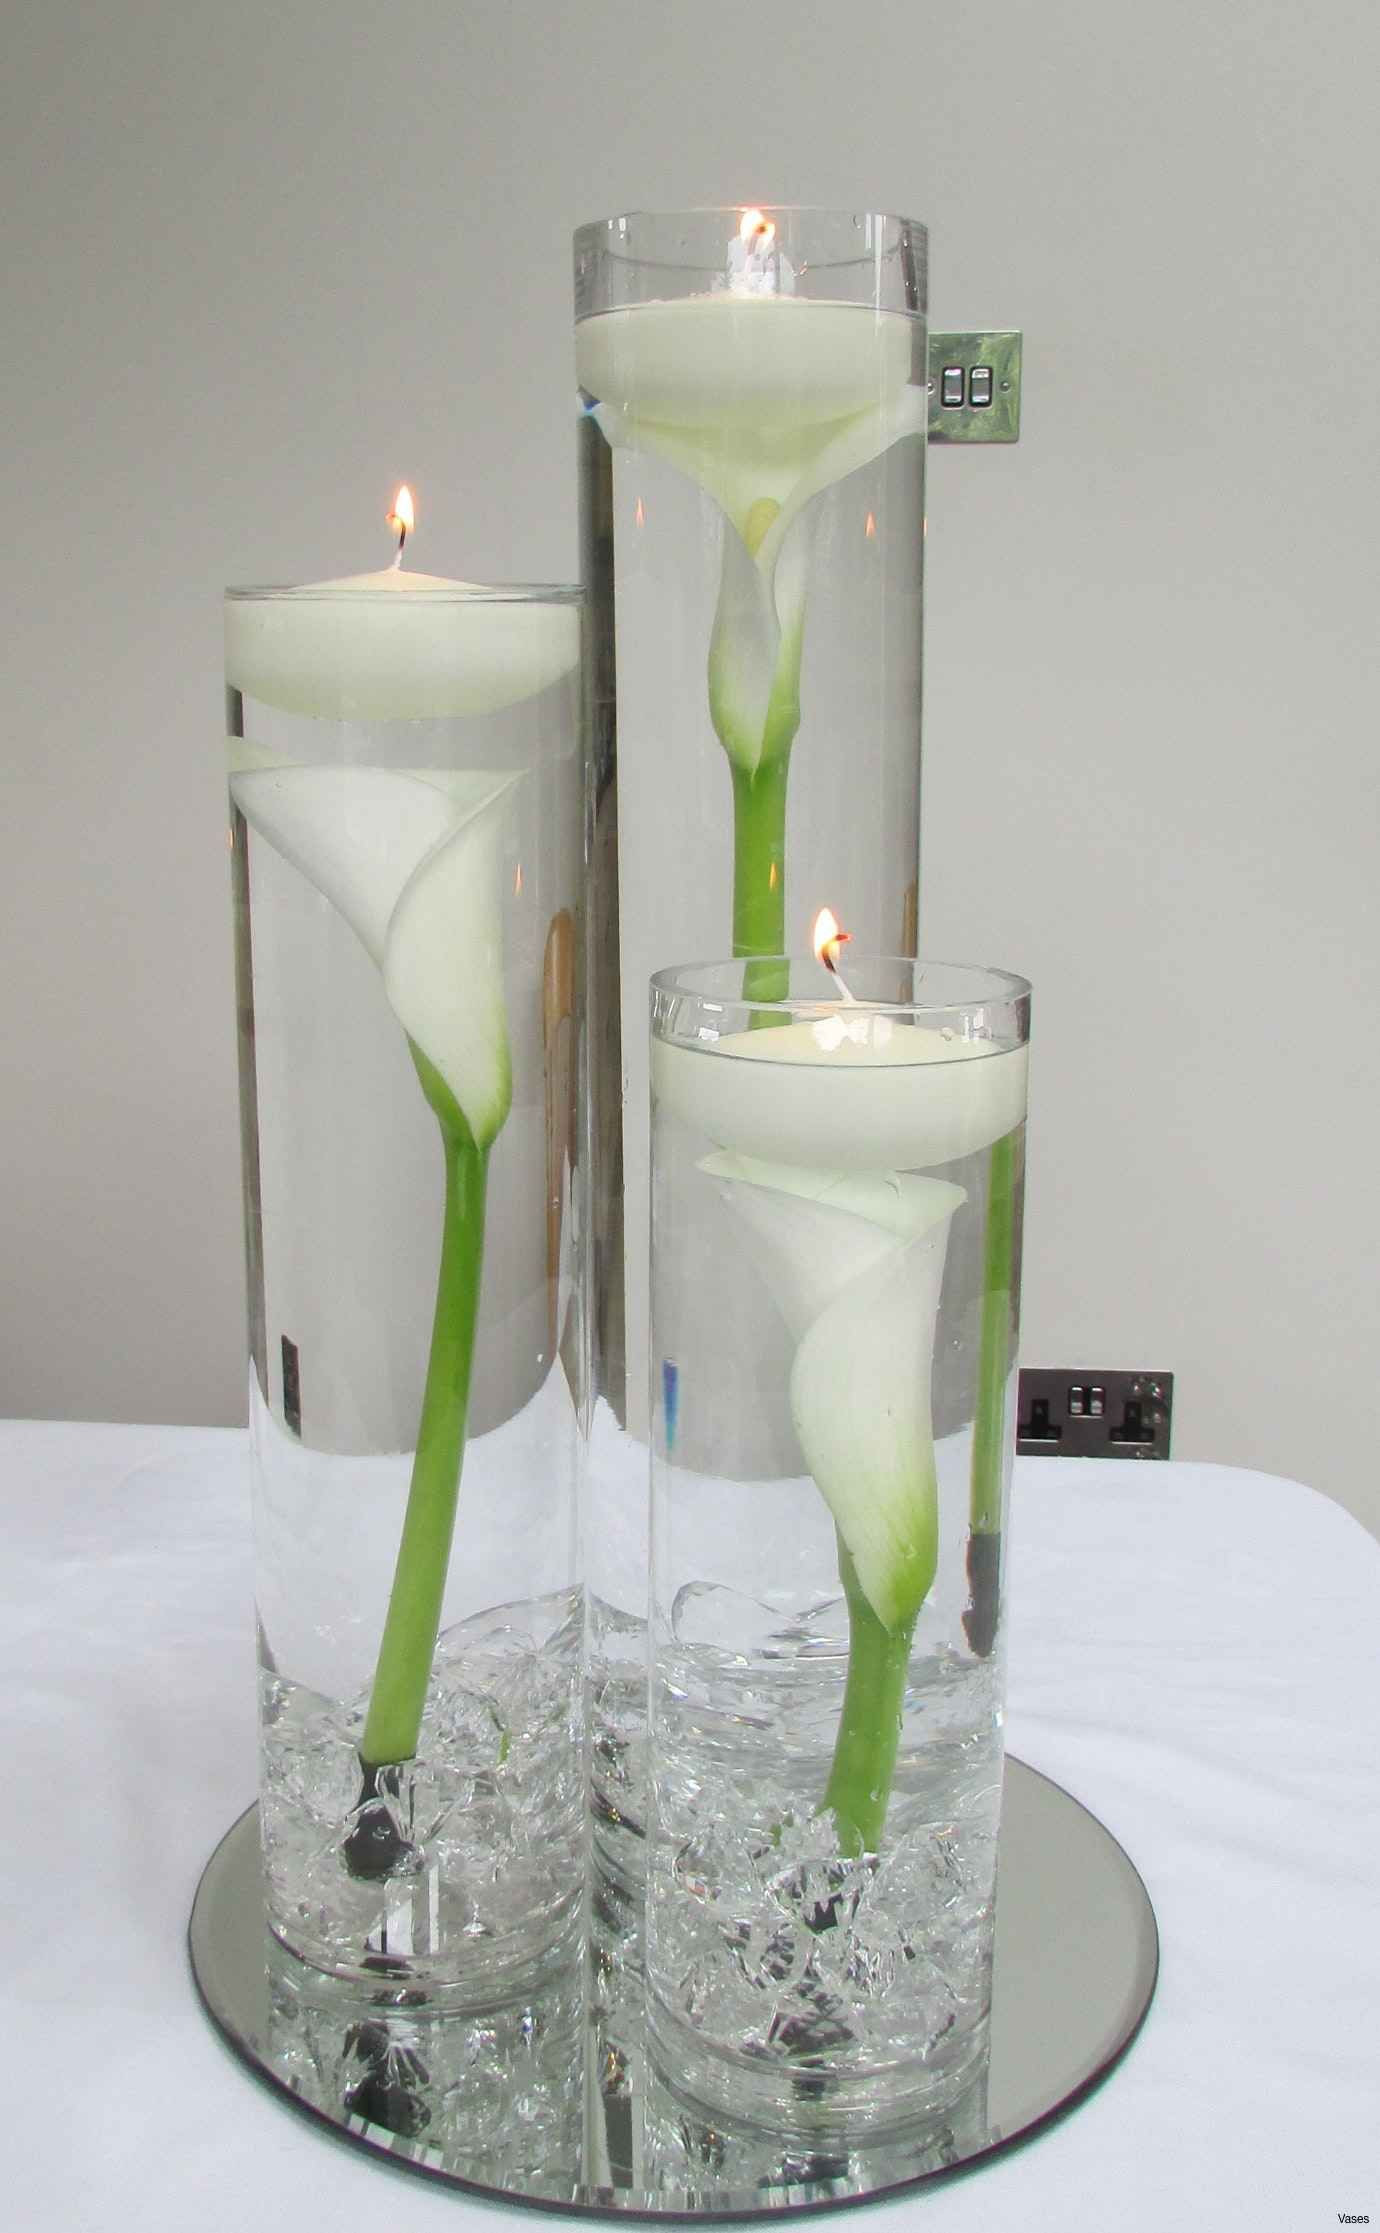 silver flower vases wholesale of gold mercury glass vases beautiful vases floating candle vase set in gold mercury glass vases beautiful vases floating candle vase set glass holdersi 0d centerpieces dollar